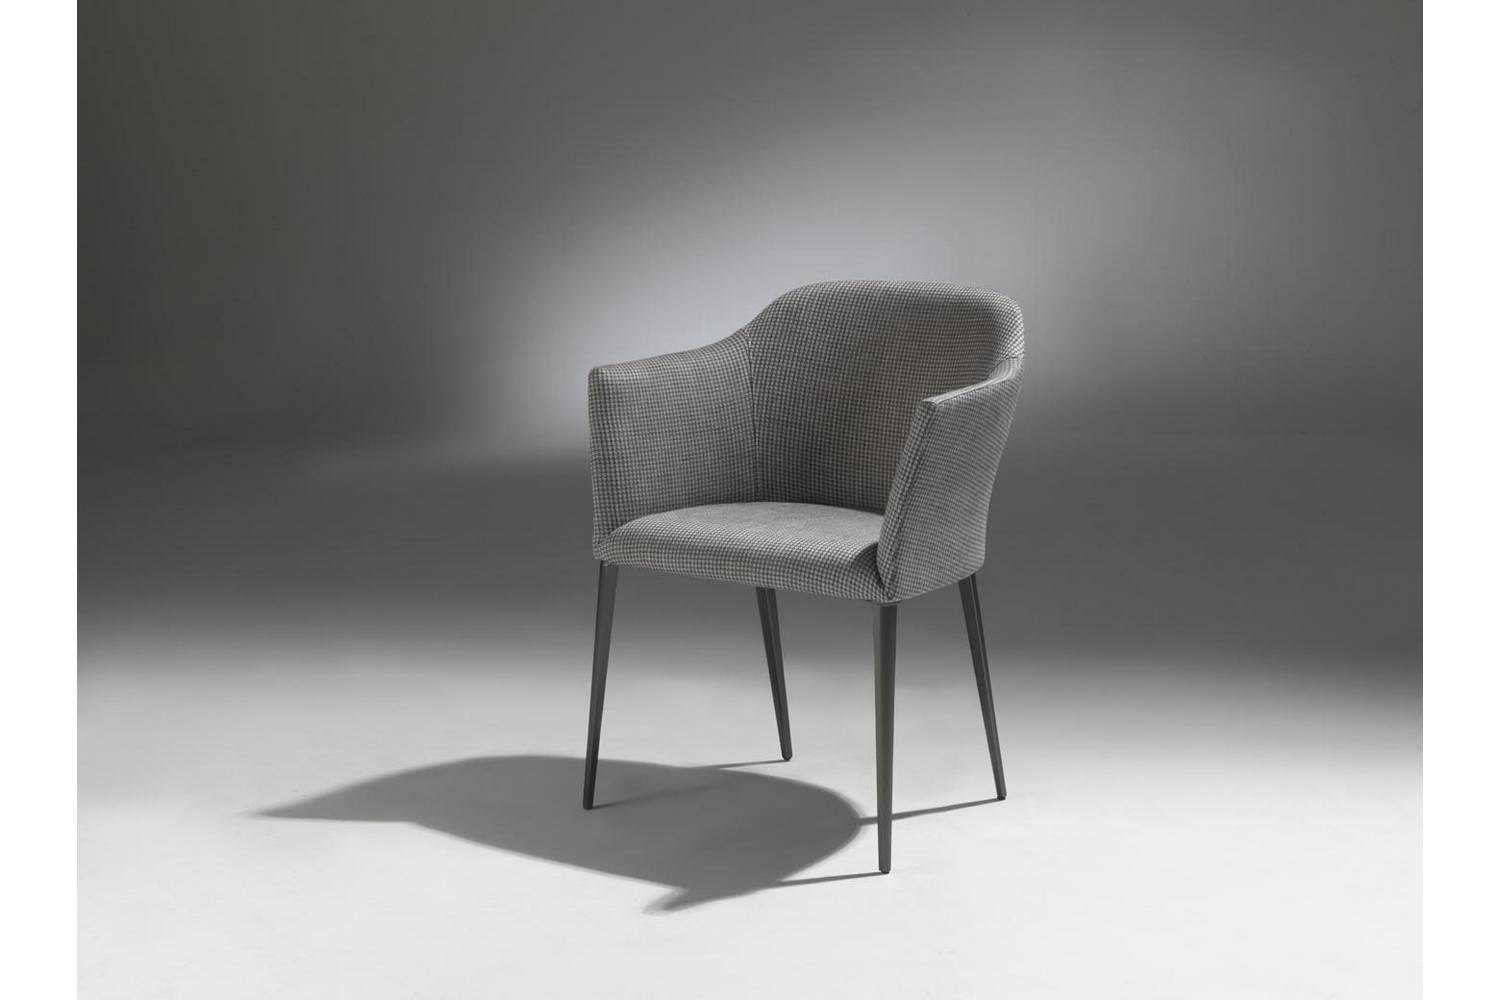 Grace Chair by G. Carollo for Porada